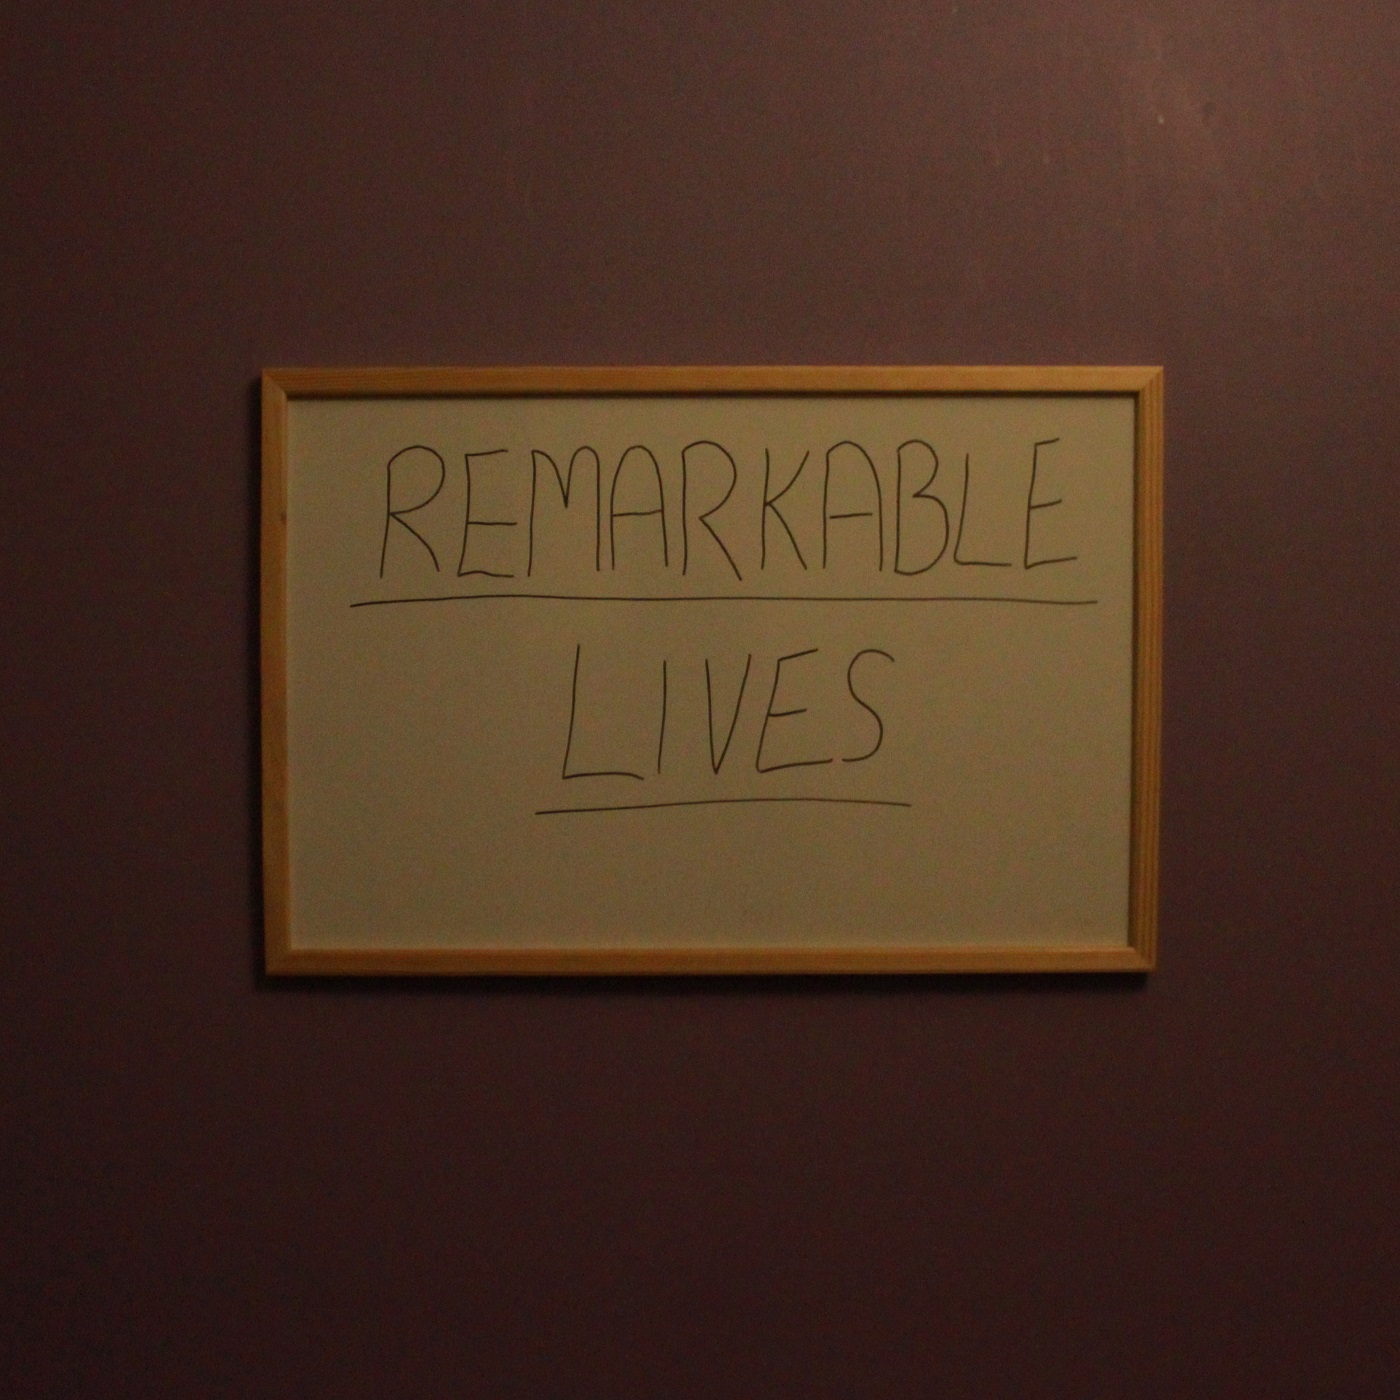 Remarkable Lives Podcast